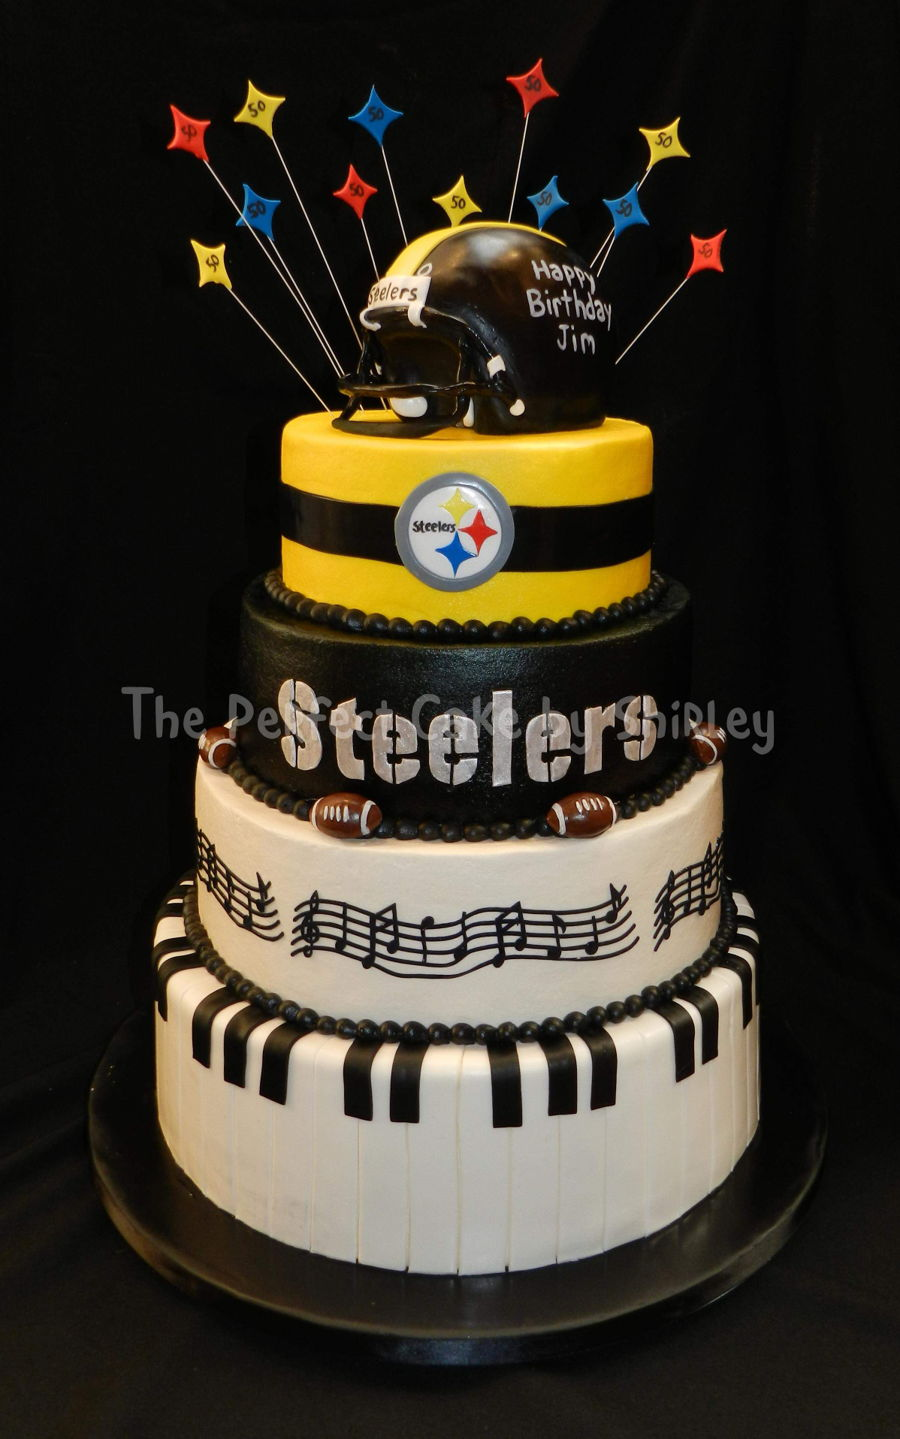 Marvelous Pittsburgh Steelers Music Cake Cakecentral Com Funny Birthday Cards Online Fluifree Goldxyz